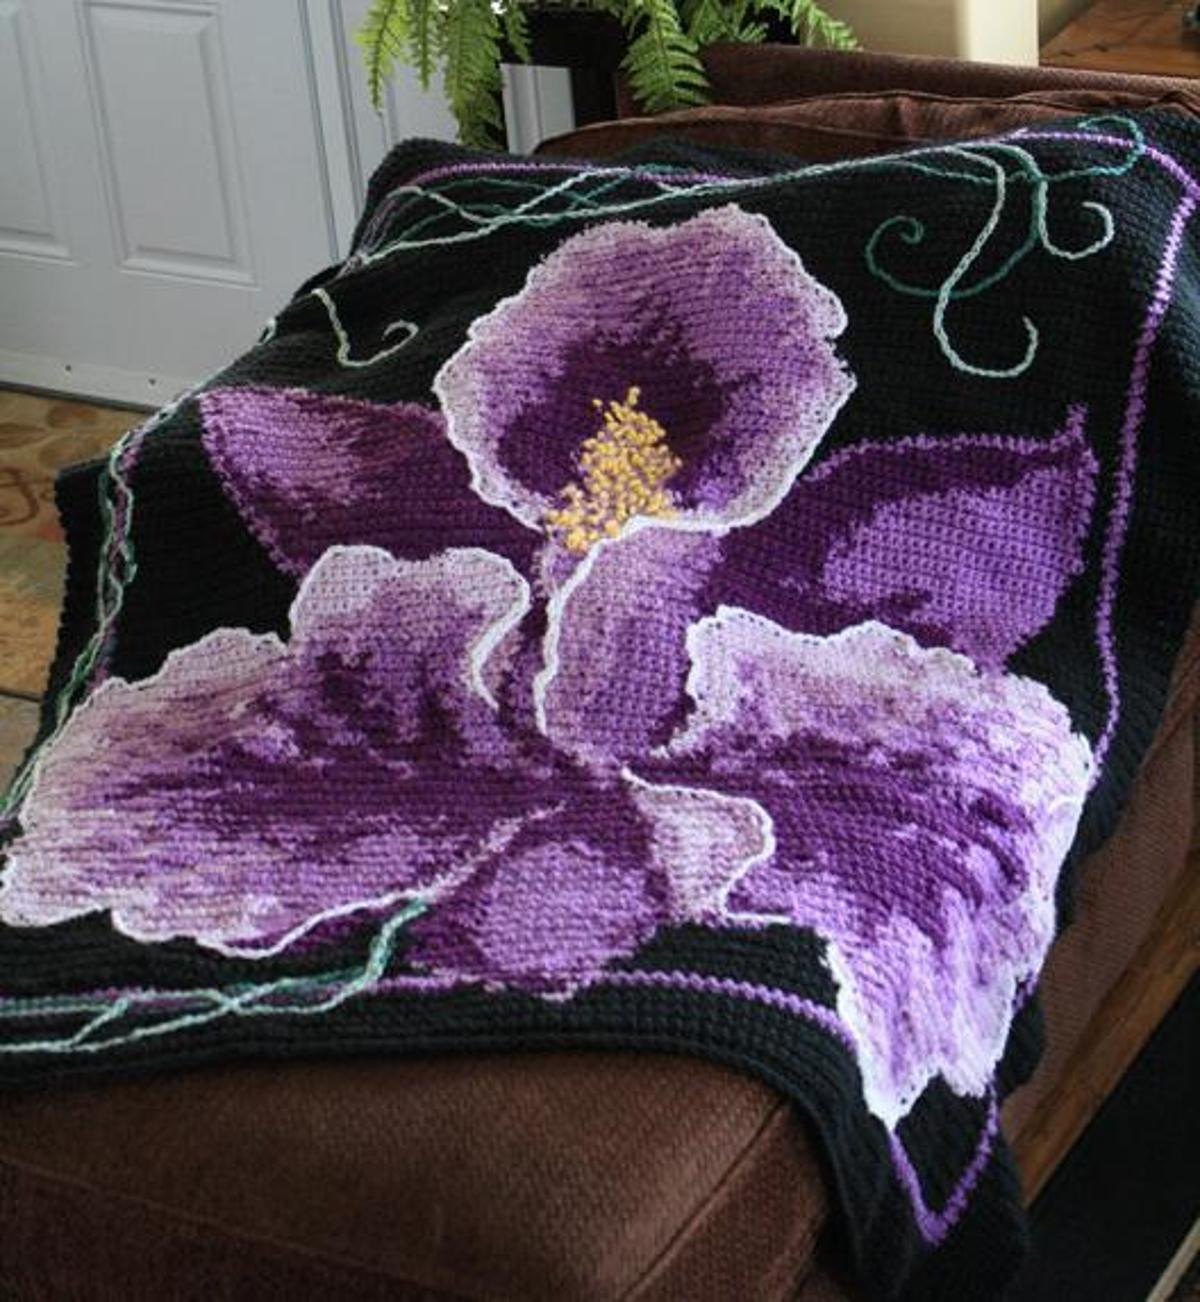 Single Crochet Patterns Beautiful orchid Single Crochet Afghan Of Single Crochet Patterns Inspirational Zig Zag Crochet Patterns Free Patterns